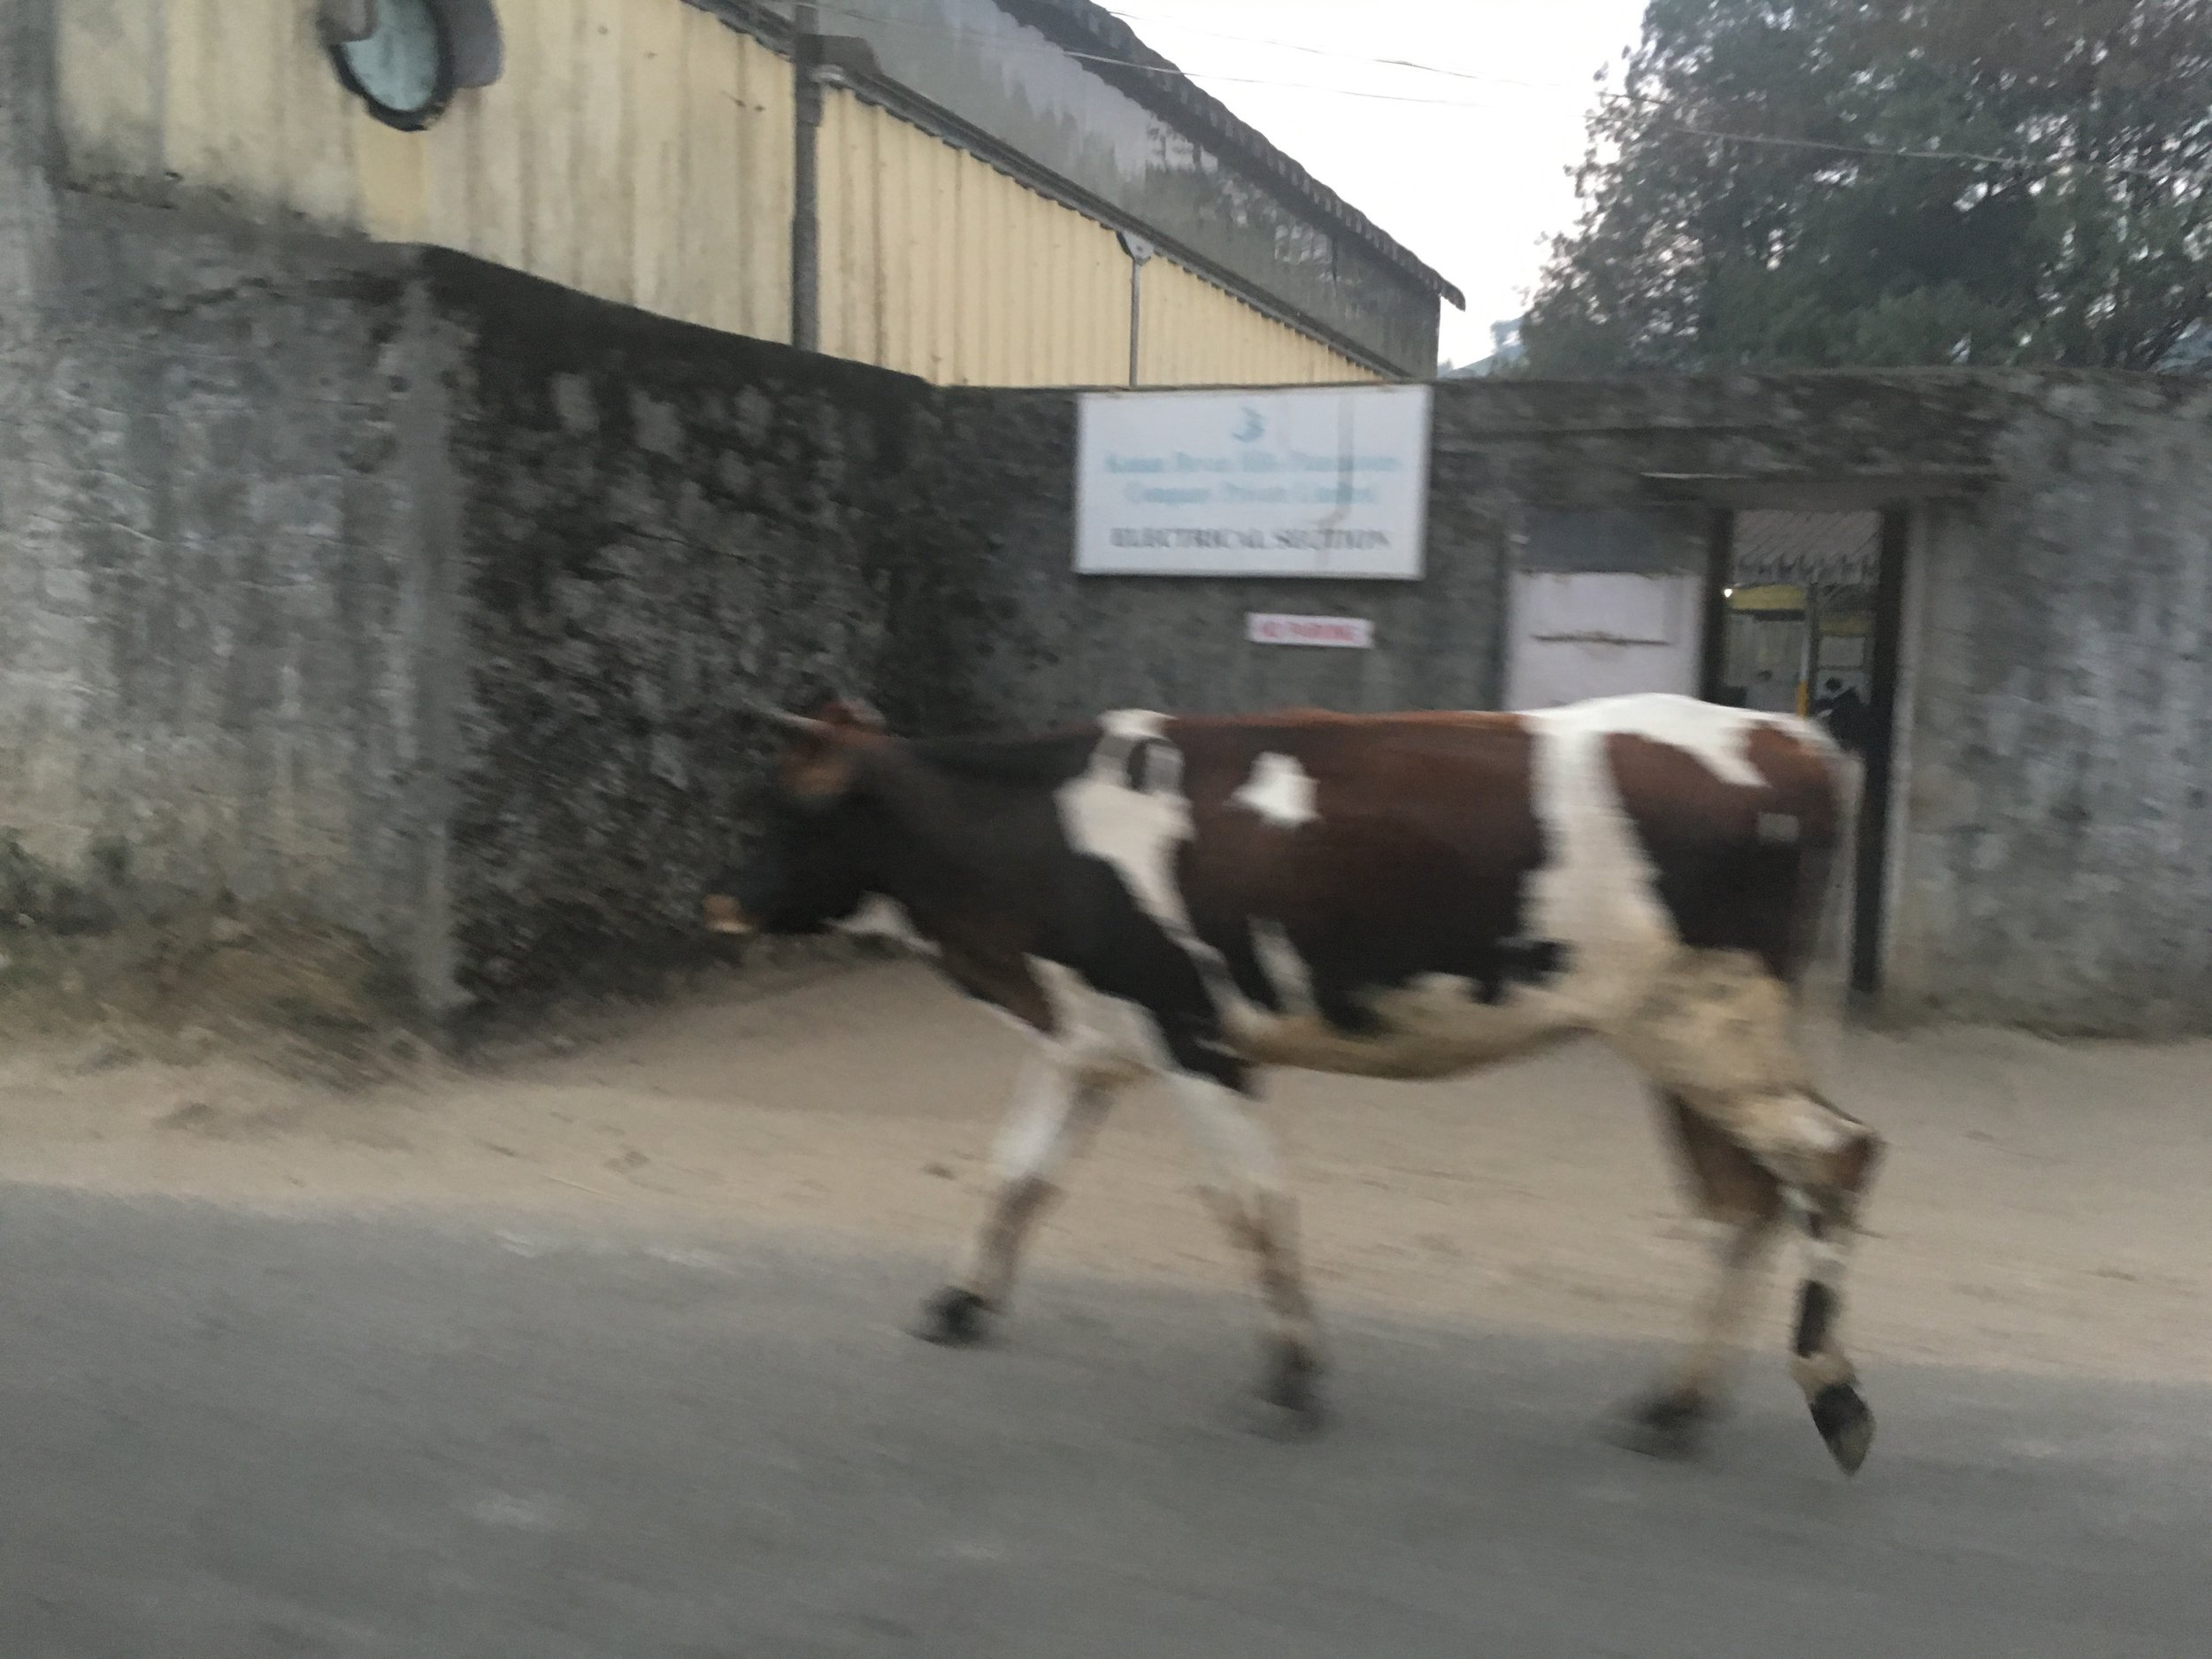 Cows walk freely through the streets of Munnar